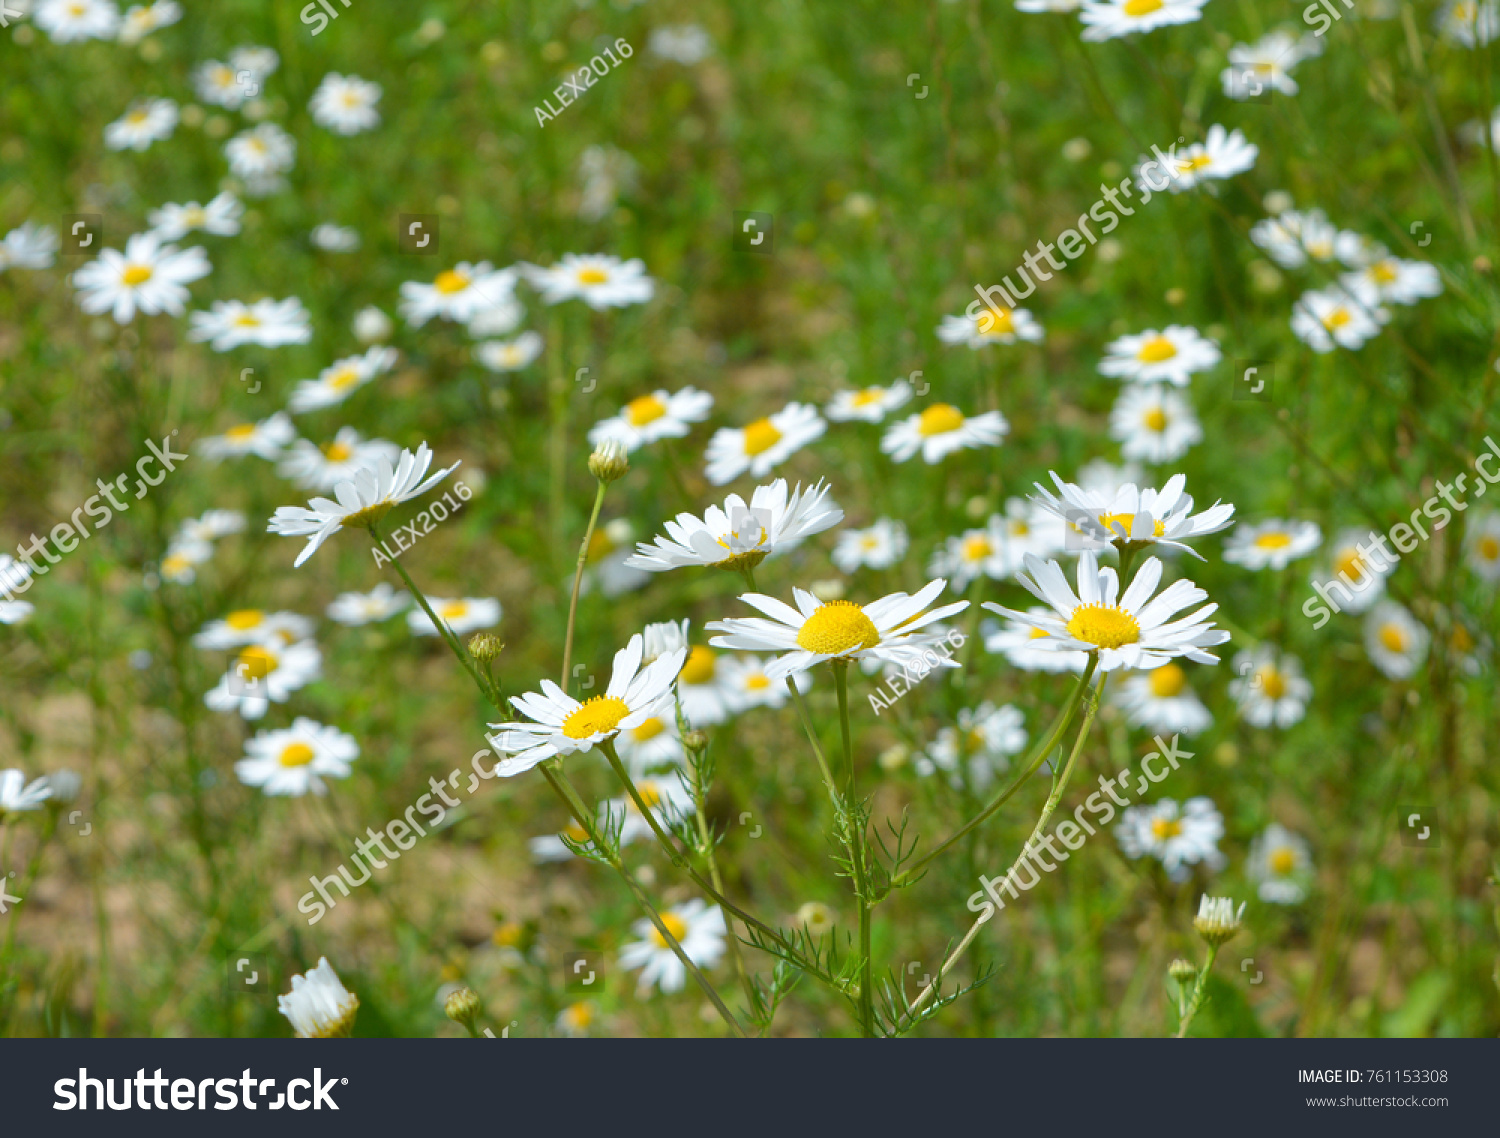 Beautiful Summer Fresh Natural Landscape A Field Of Blooming Daisy